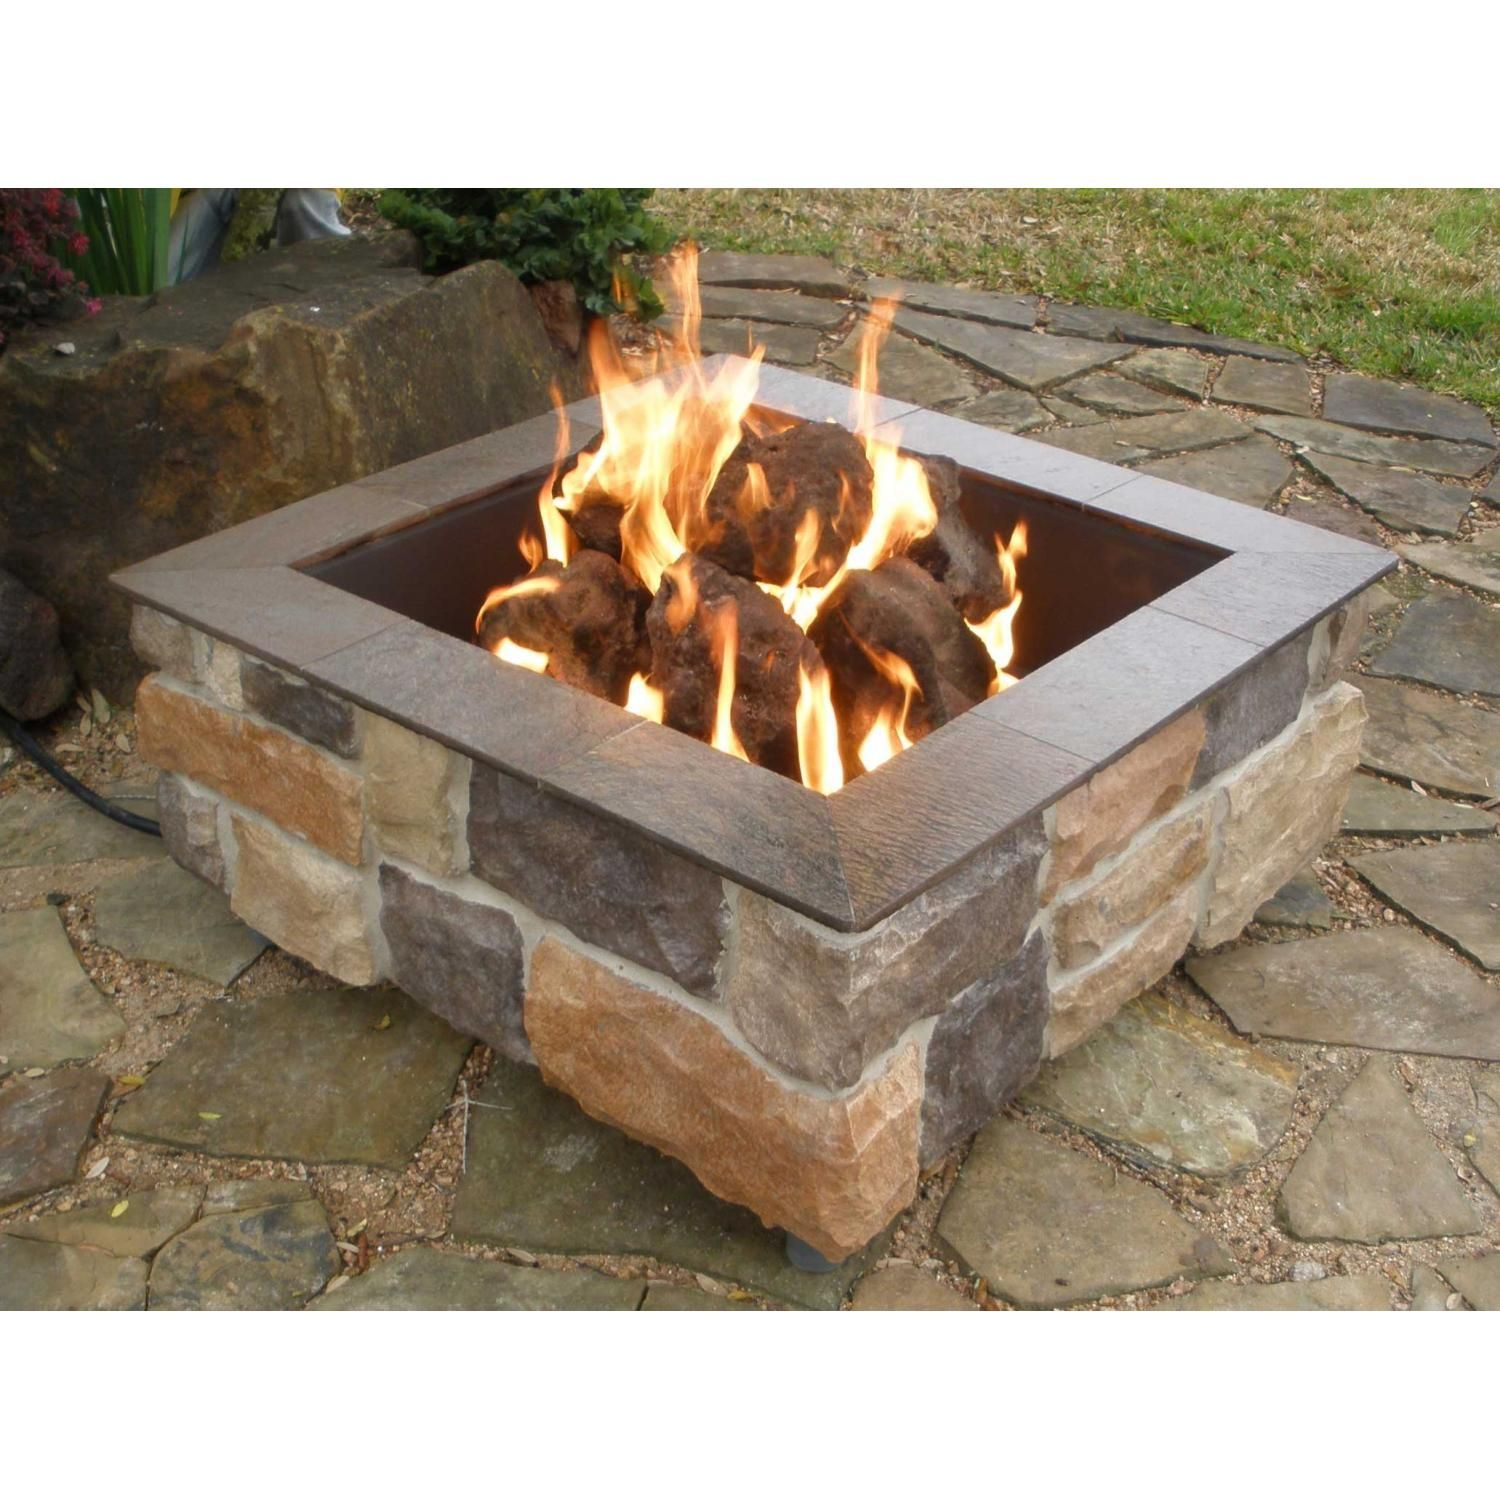 FireScapes Smooth Ledge Square Natural Gas Fire Pit in Rock